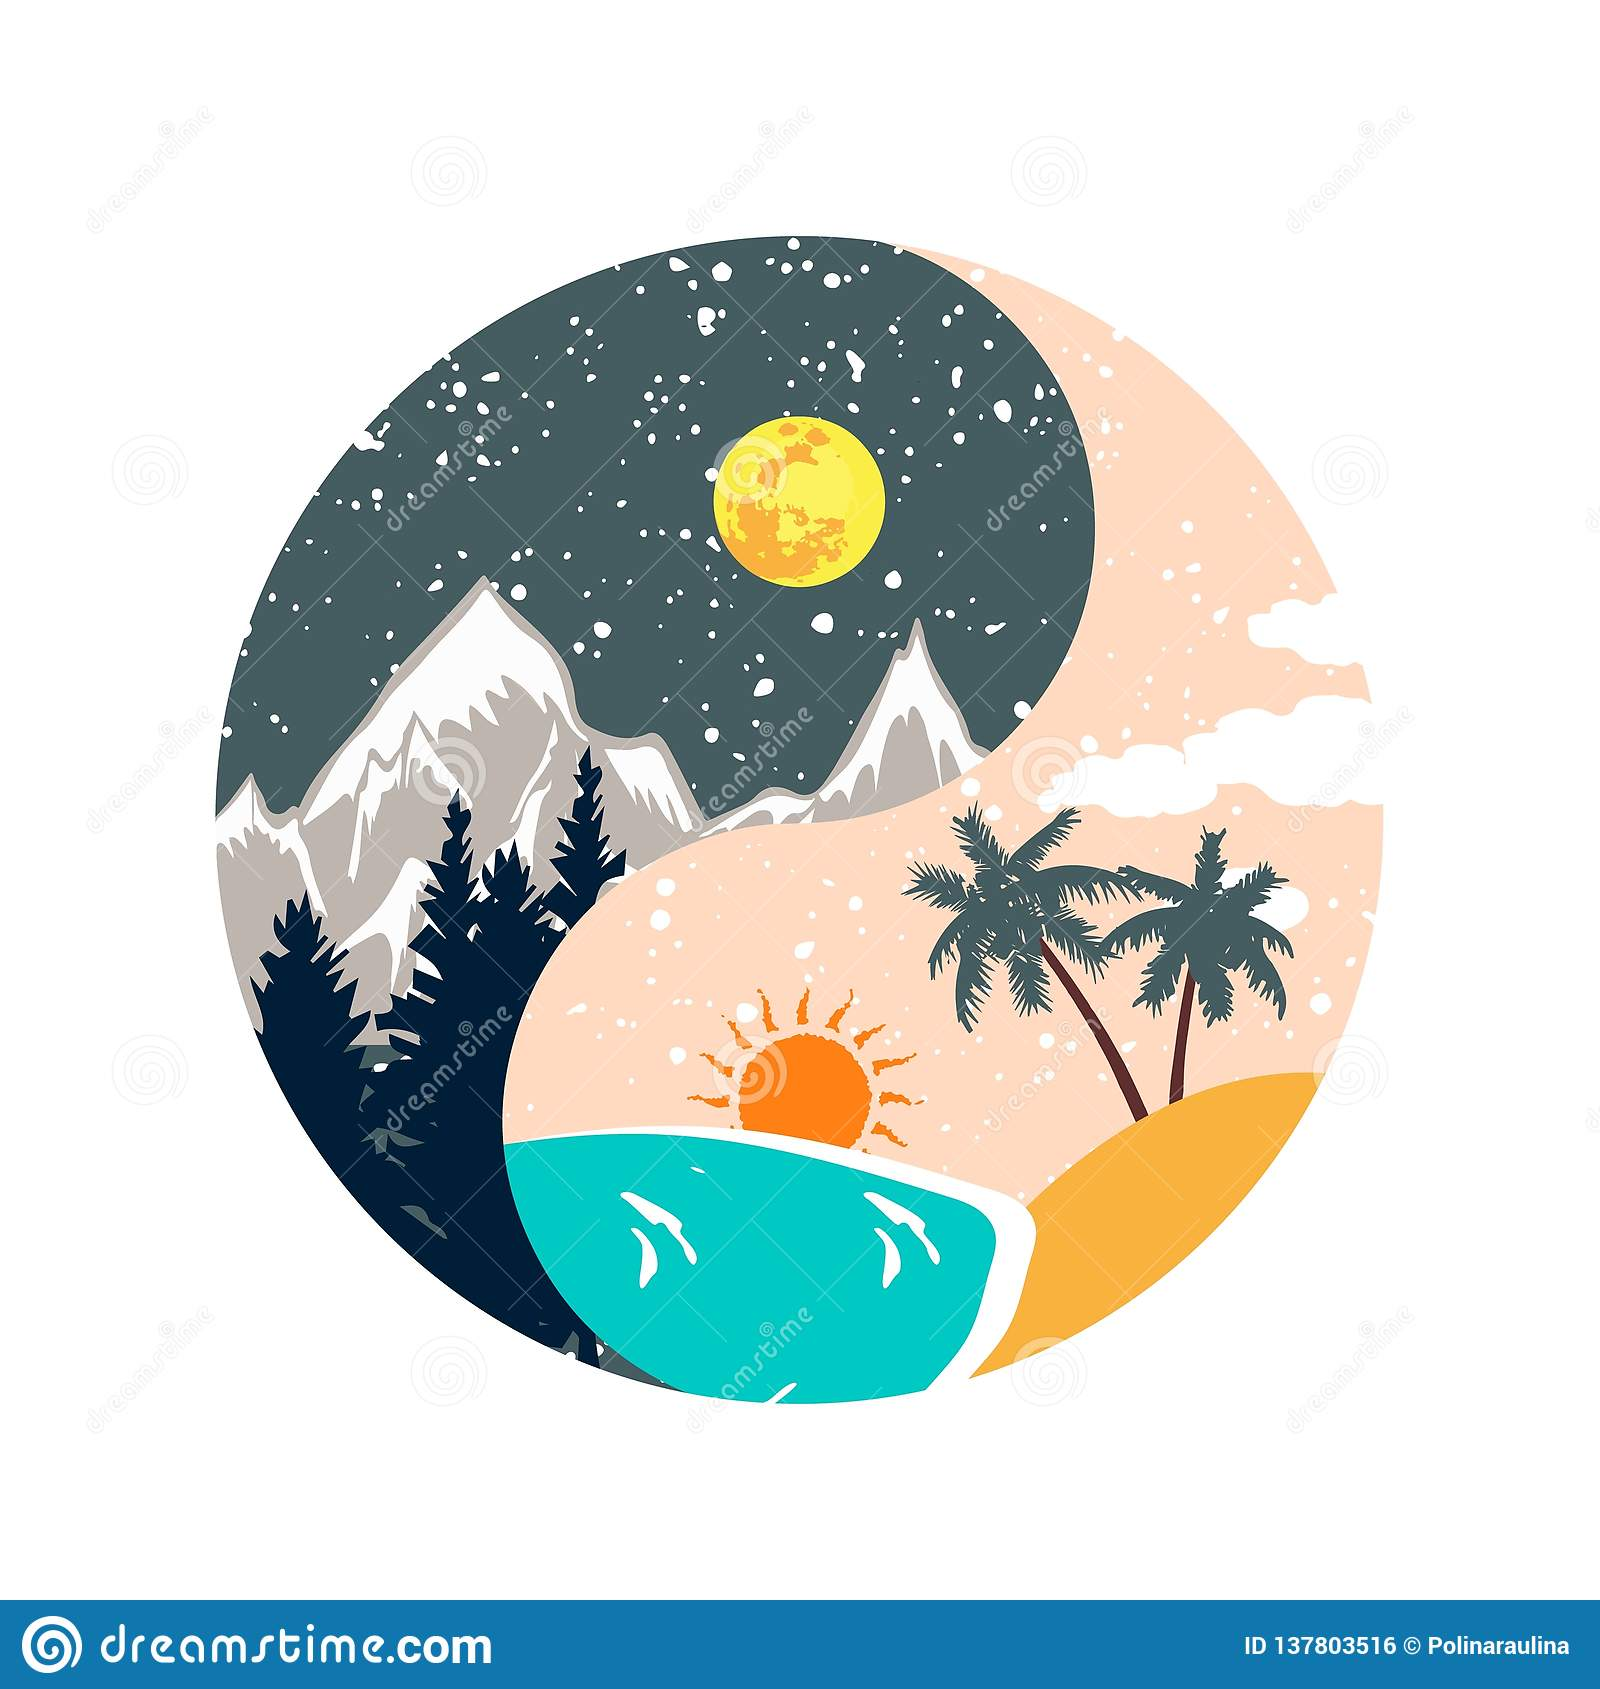 Winter and summer ying yang illustration